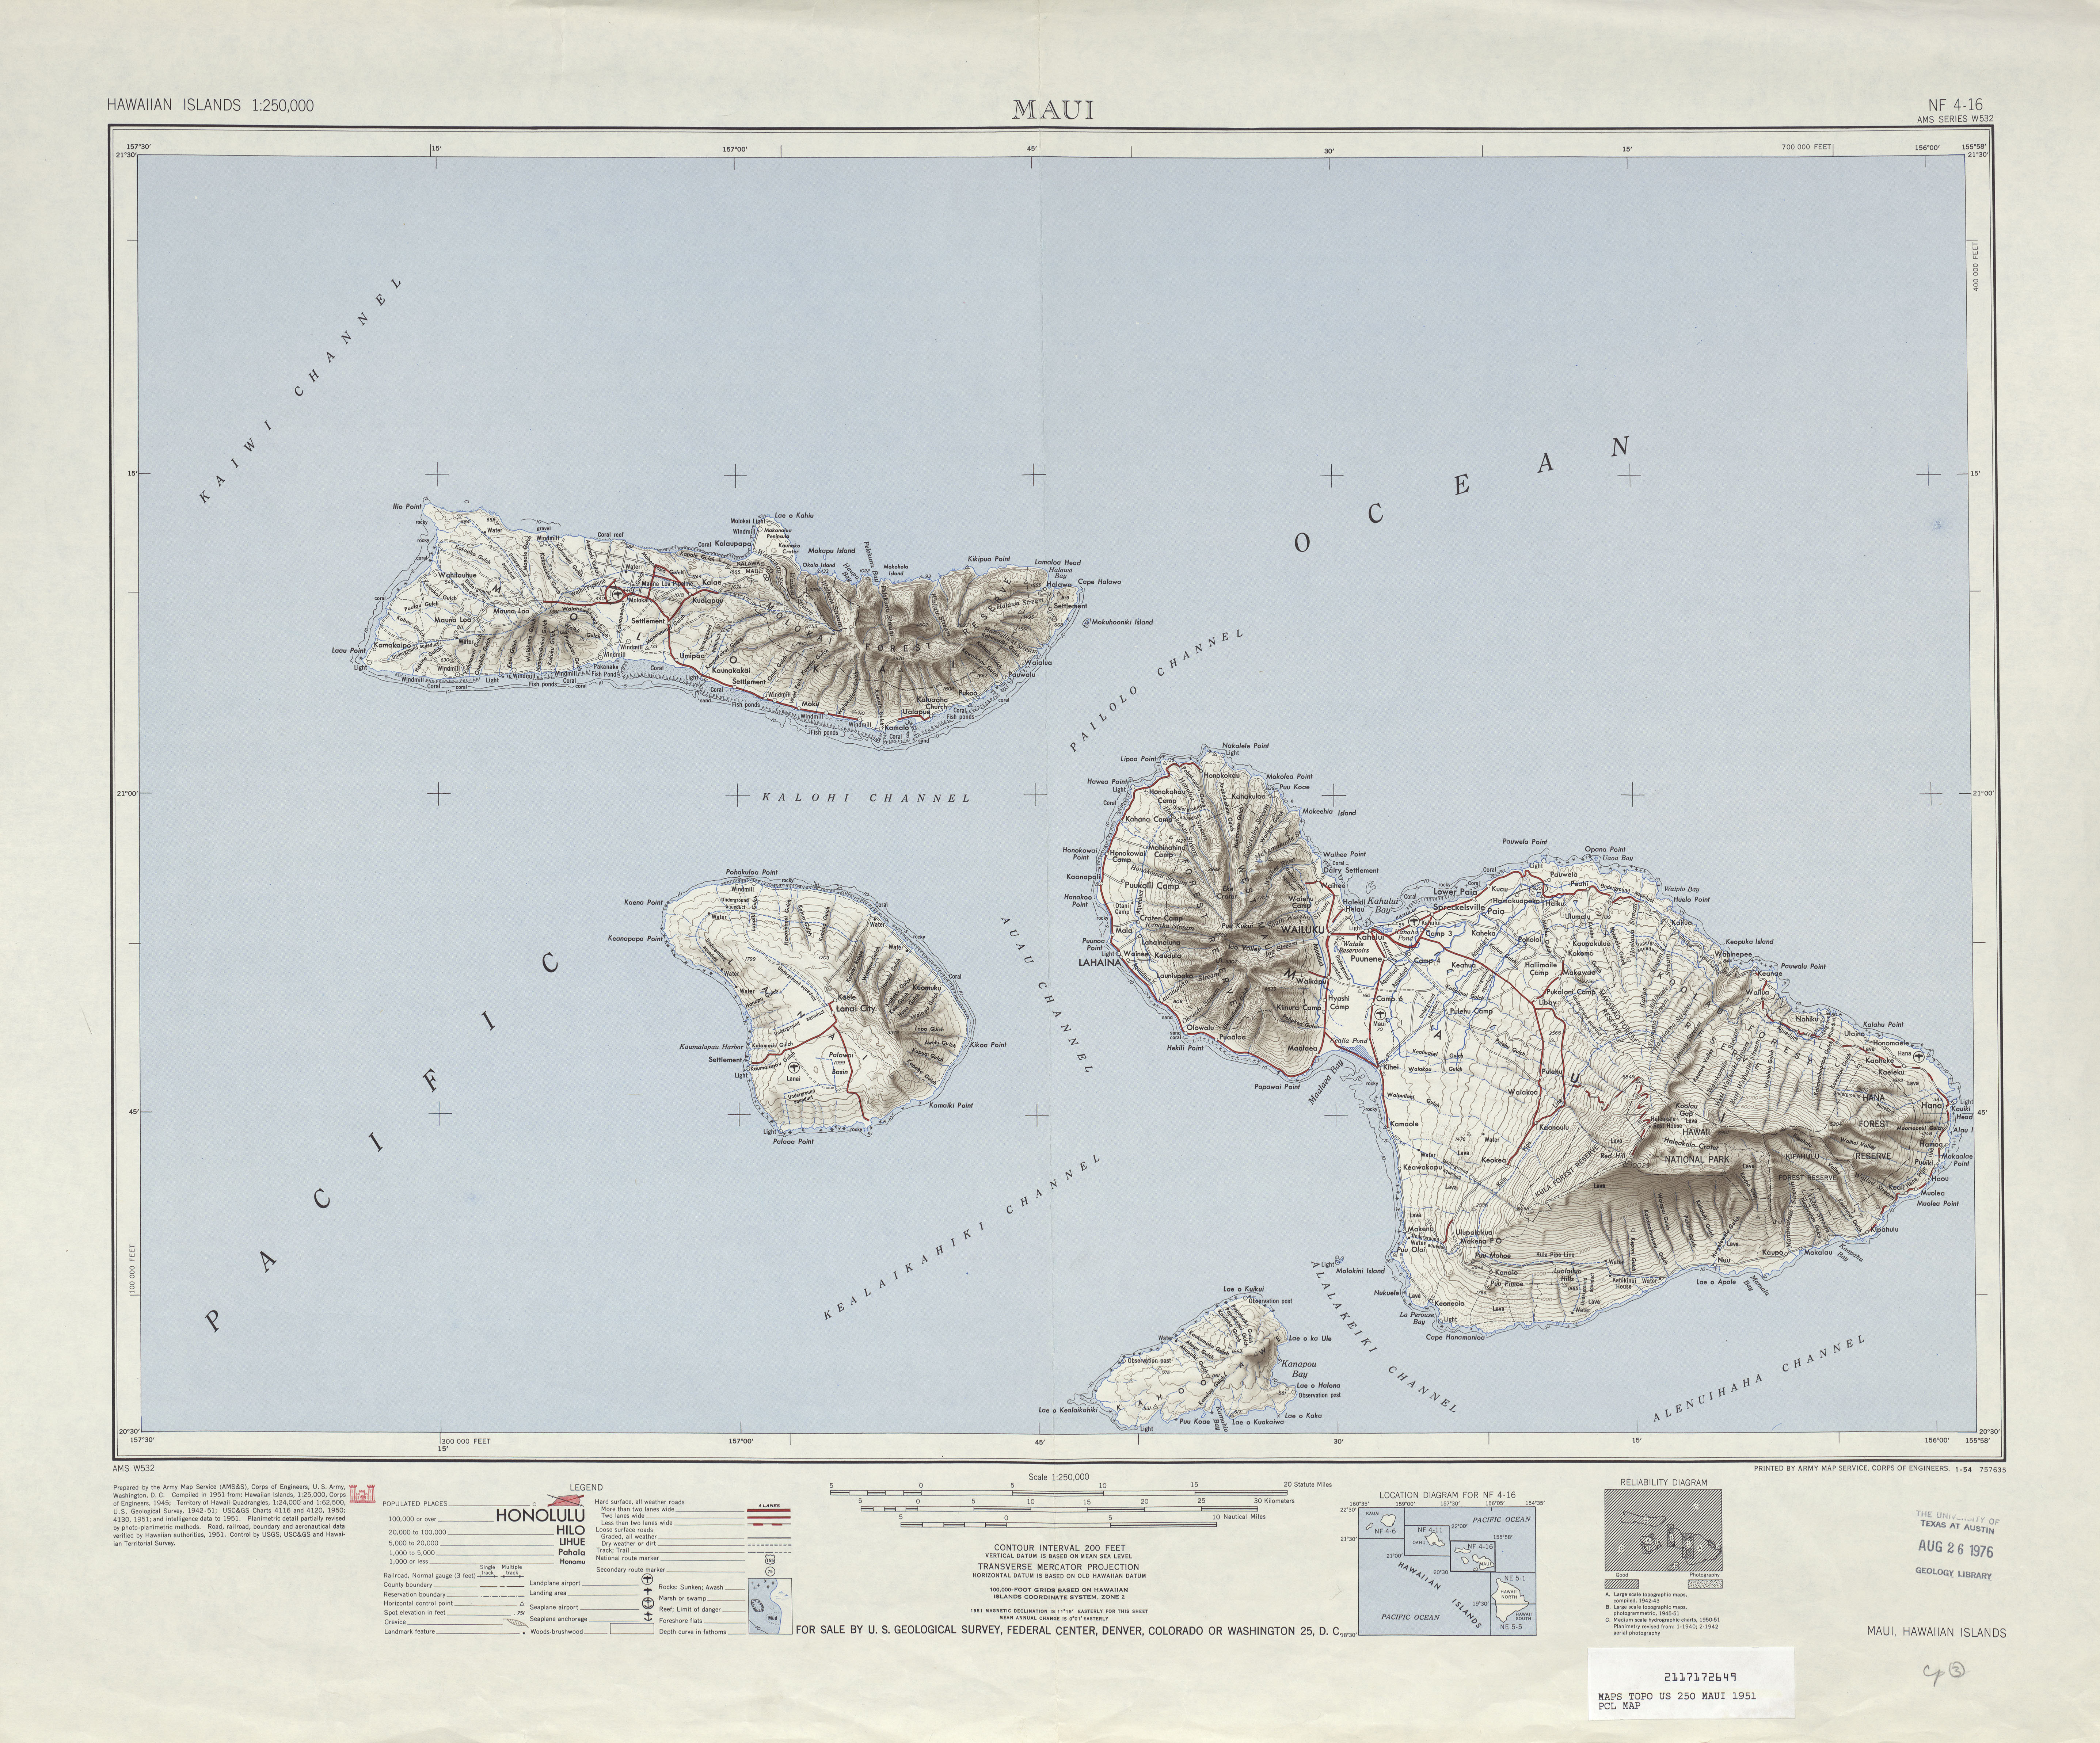 Maui Shaded Relief Map Sheet, United States 1951